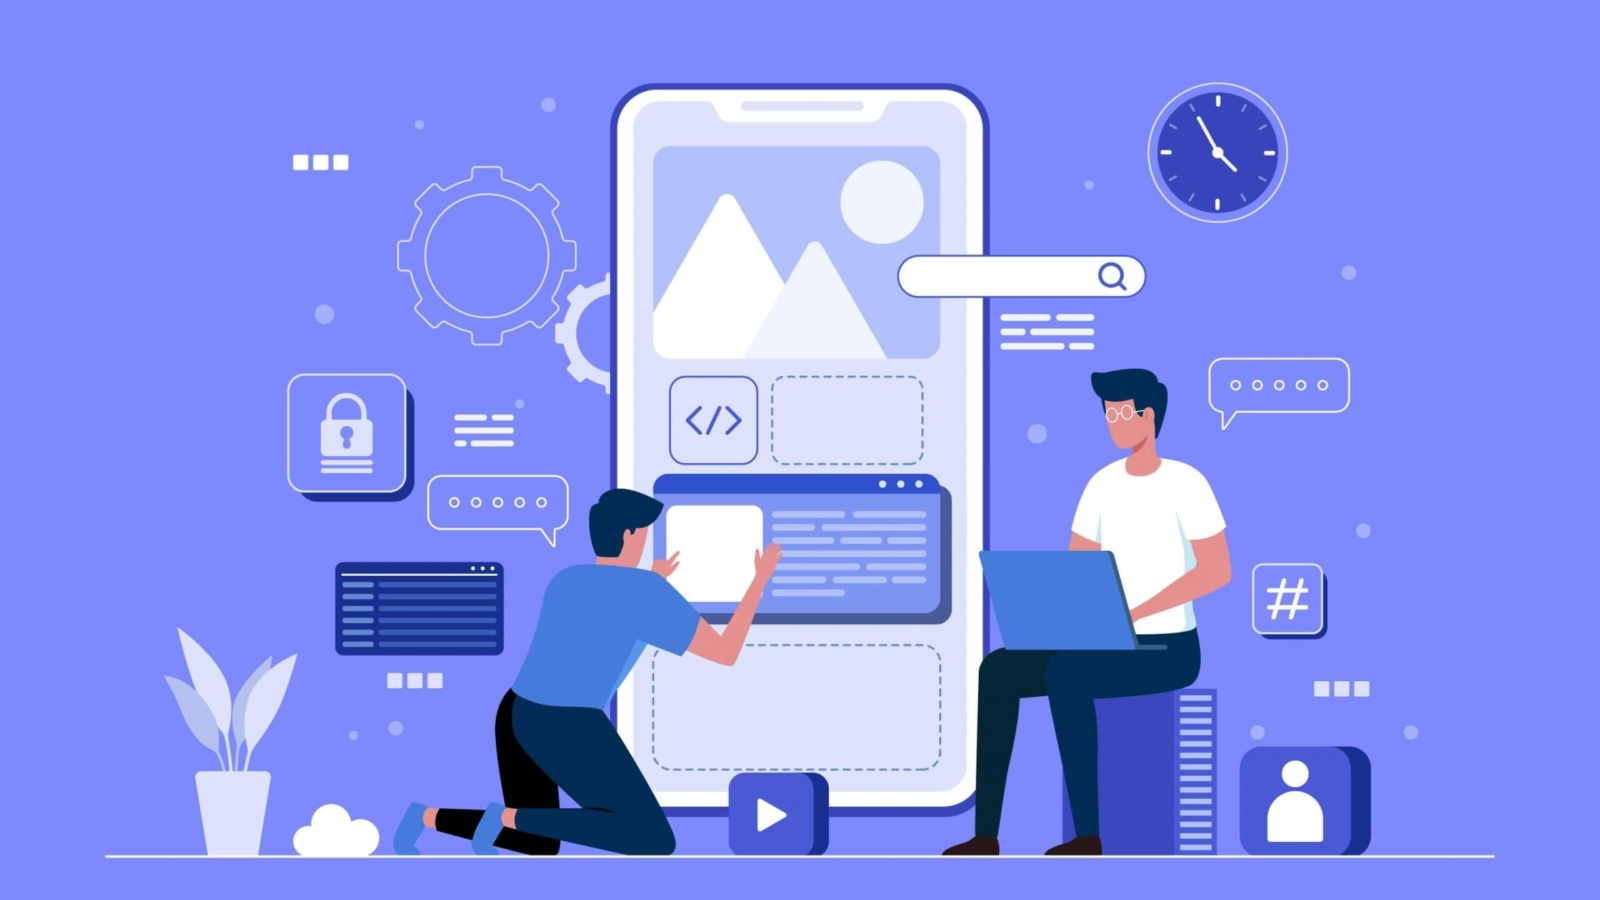 mobile-app-development-guide-scaled